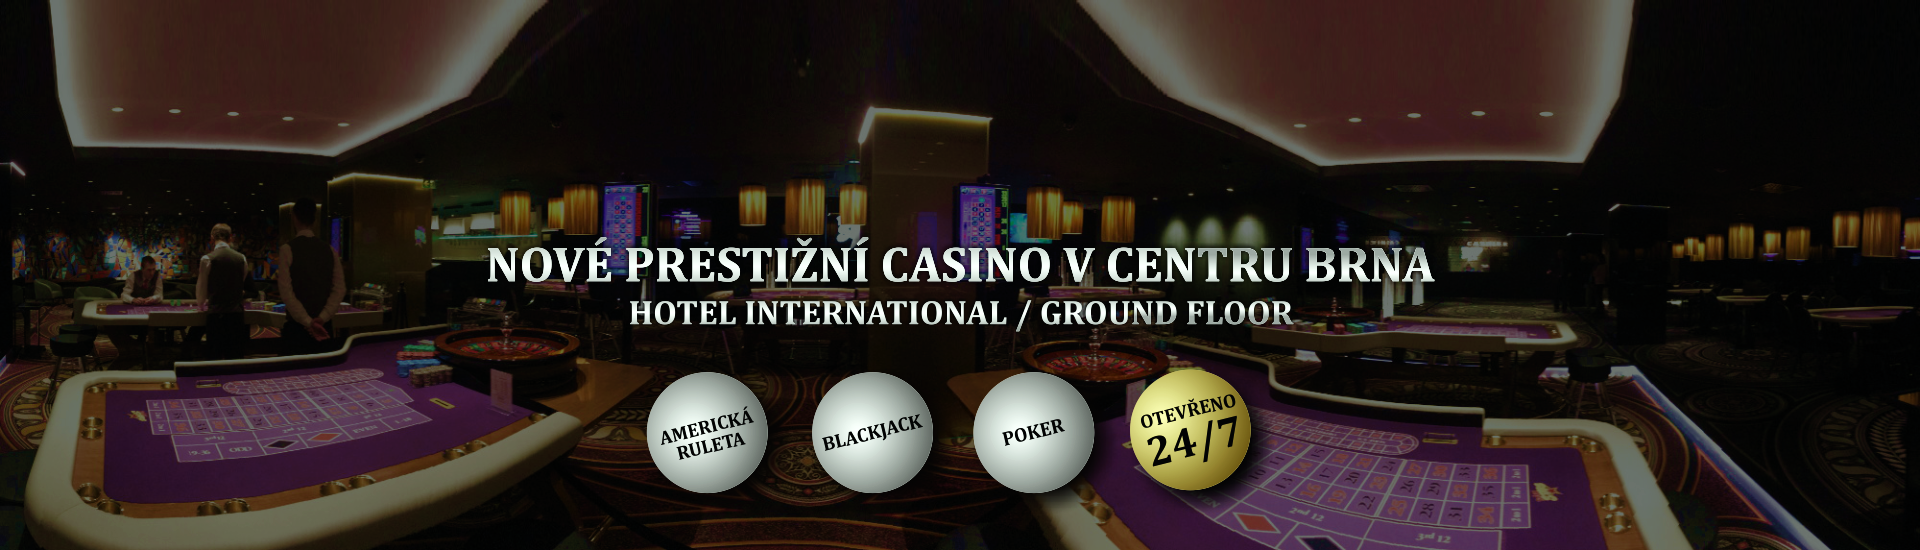 Rebuy Stars Casino Brno - Hotel International